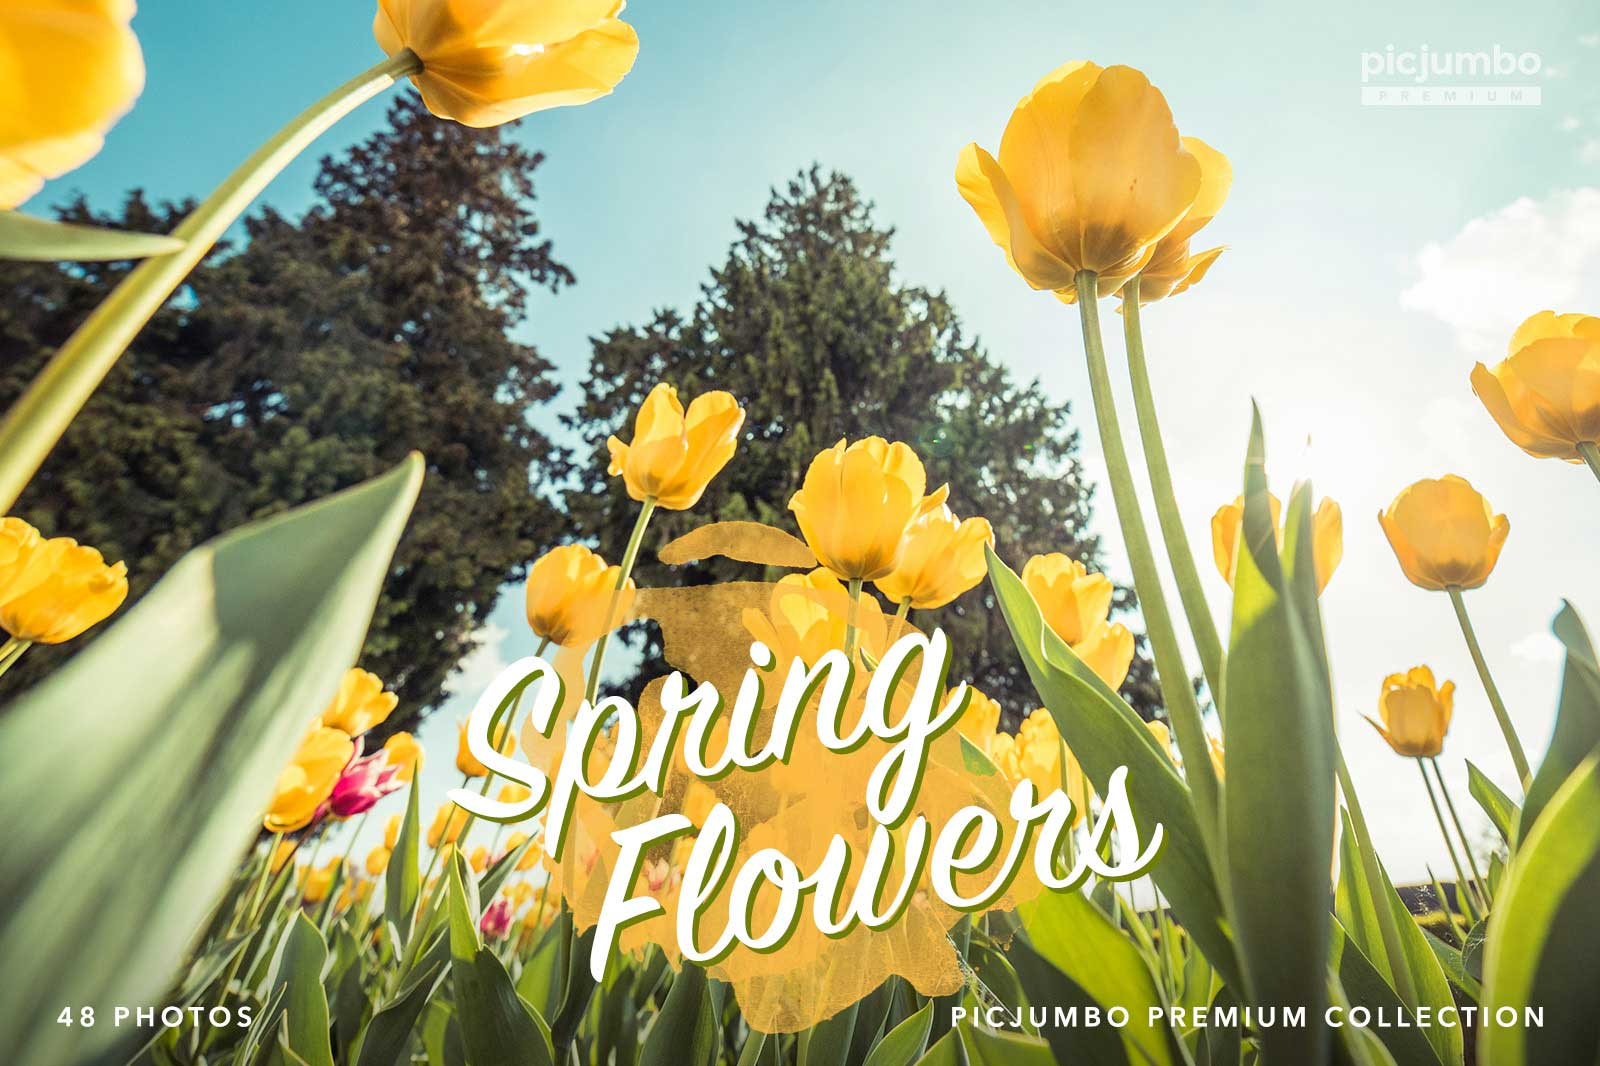 Spring Flowers — get it now in picjumbo PREMIUM!